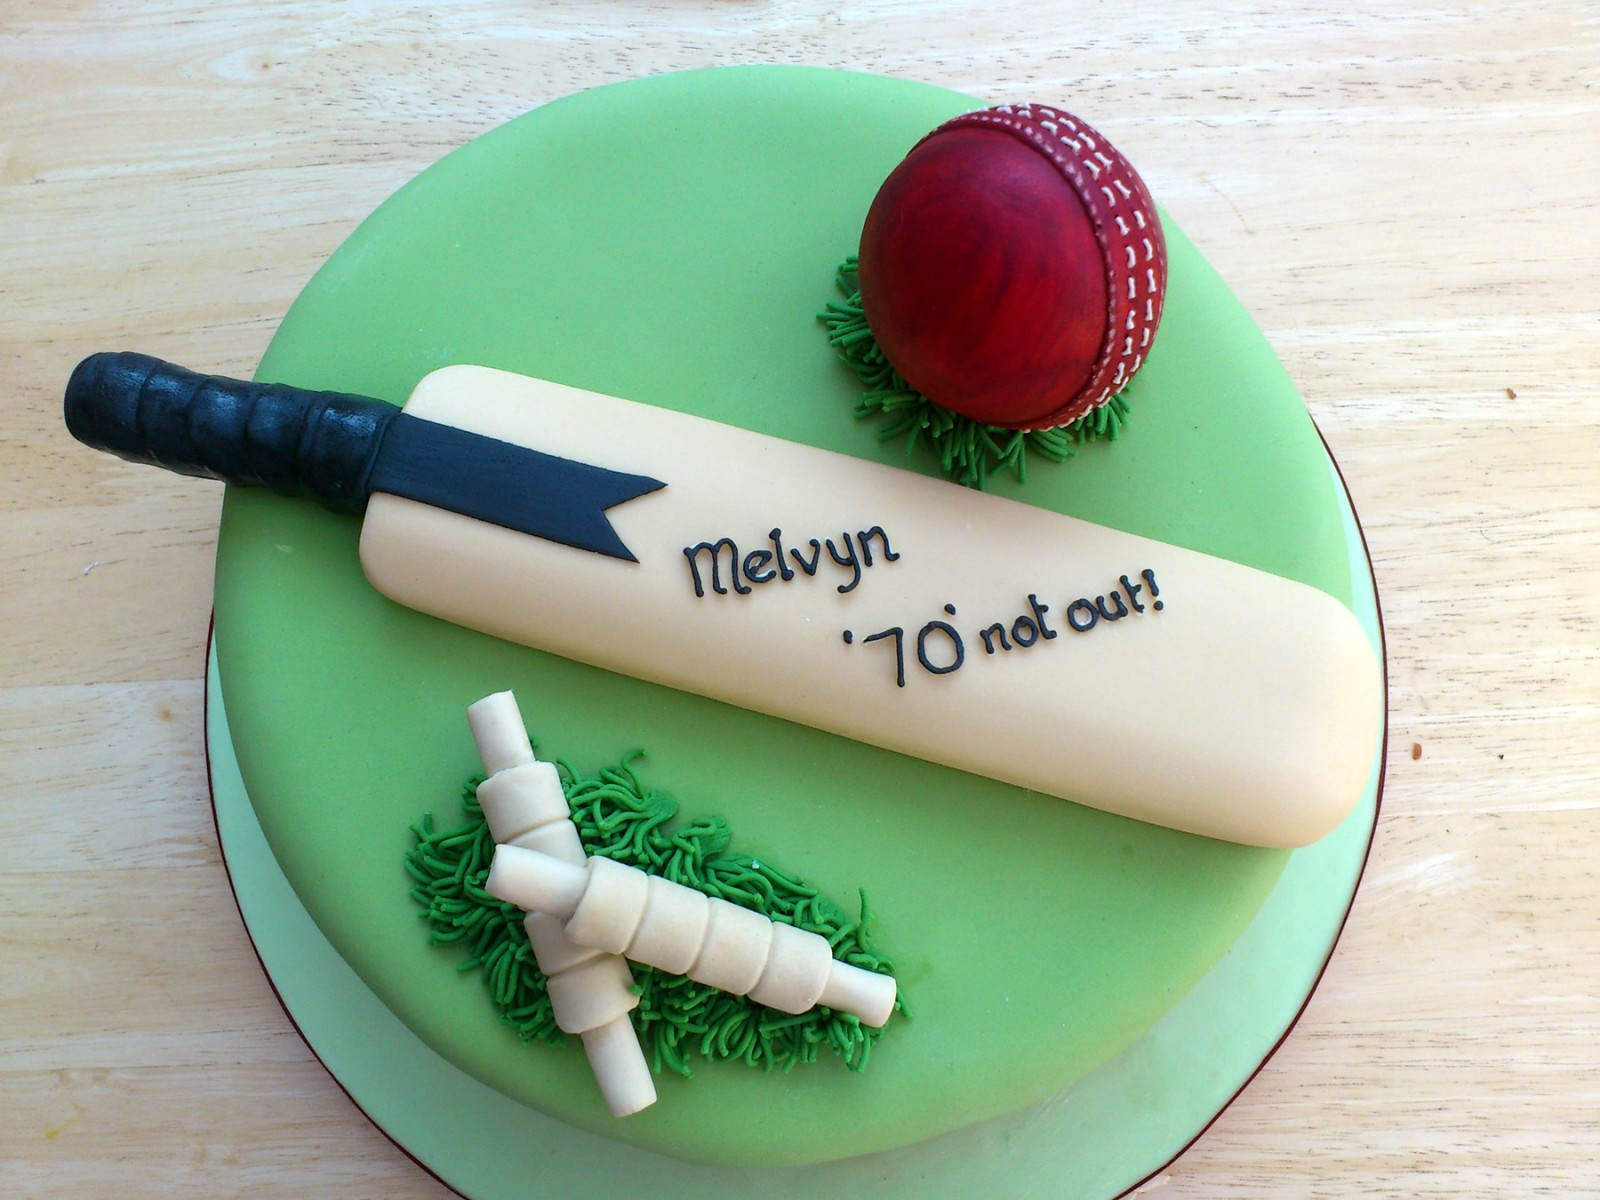 Cricket Bat Cake Images : Pin Novelty Cricket Bat Iced Birthday Cake Cake on Pinterest